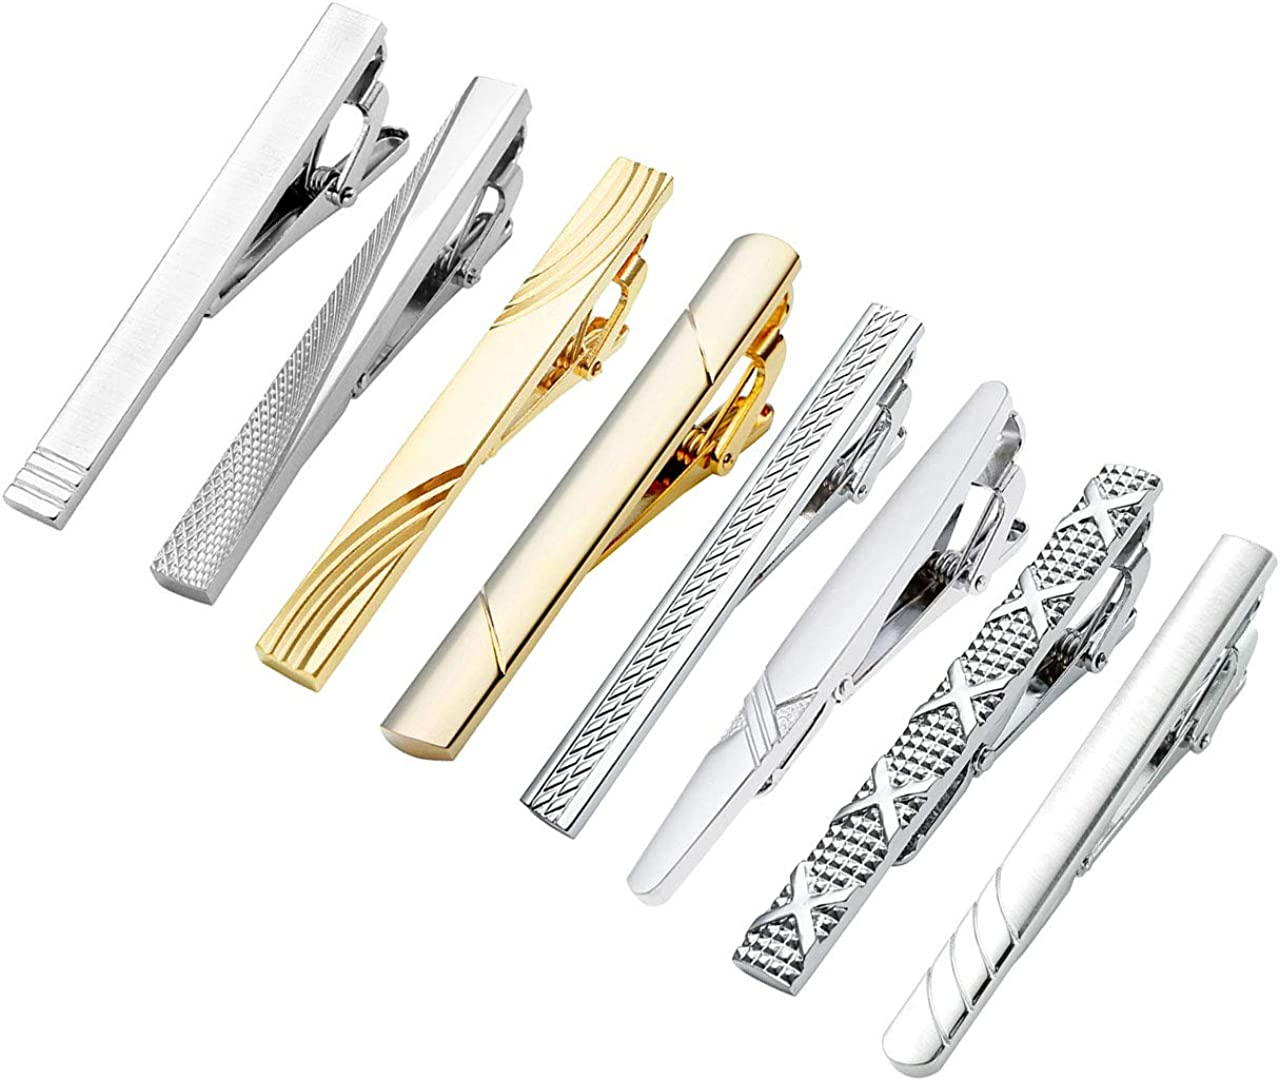 Jovivi 8pc Mens Stainless Steel Luxury Fashion Necktie Clips Bar Mix Variety Set - Black Gift Box